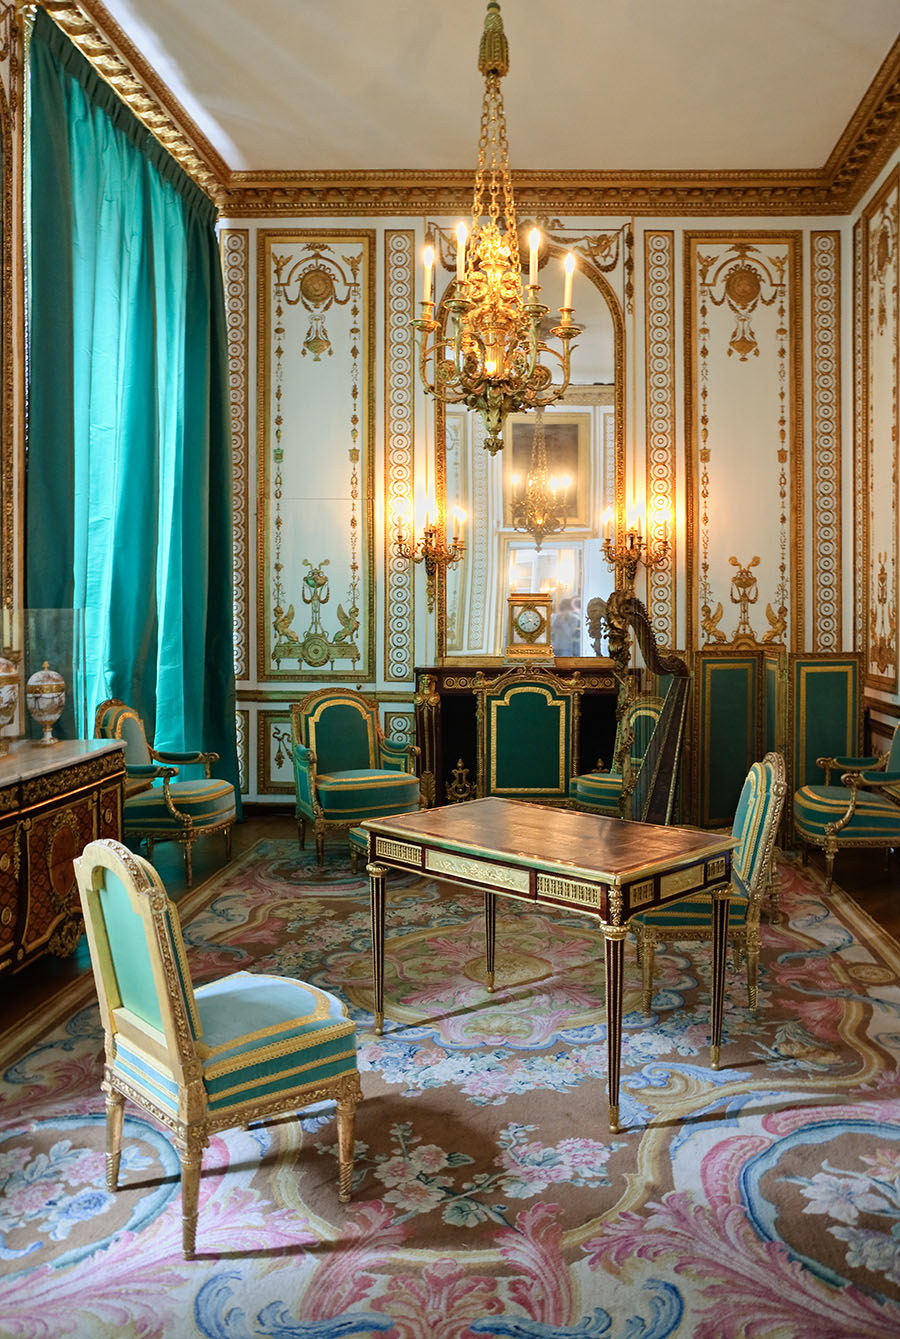 A highly ornate room with lush complex gold patterns and 18th century furniture.